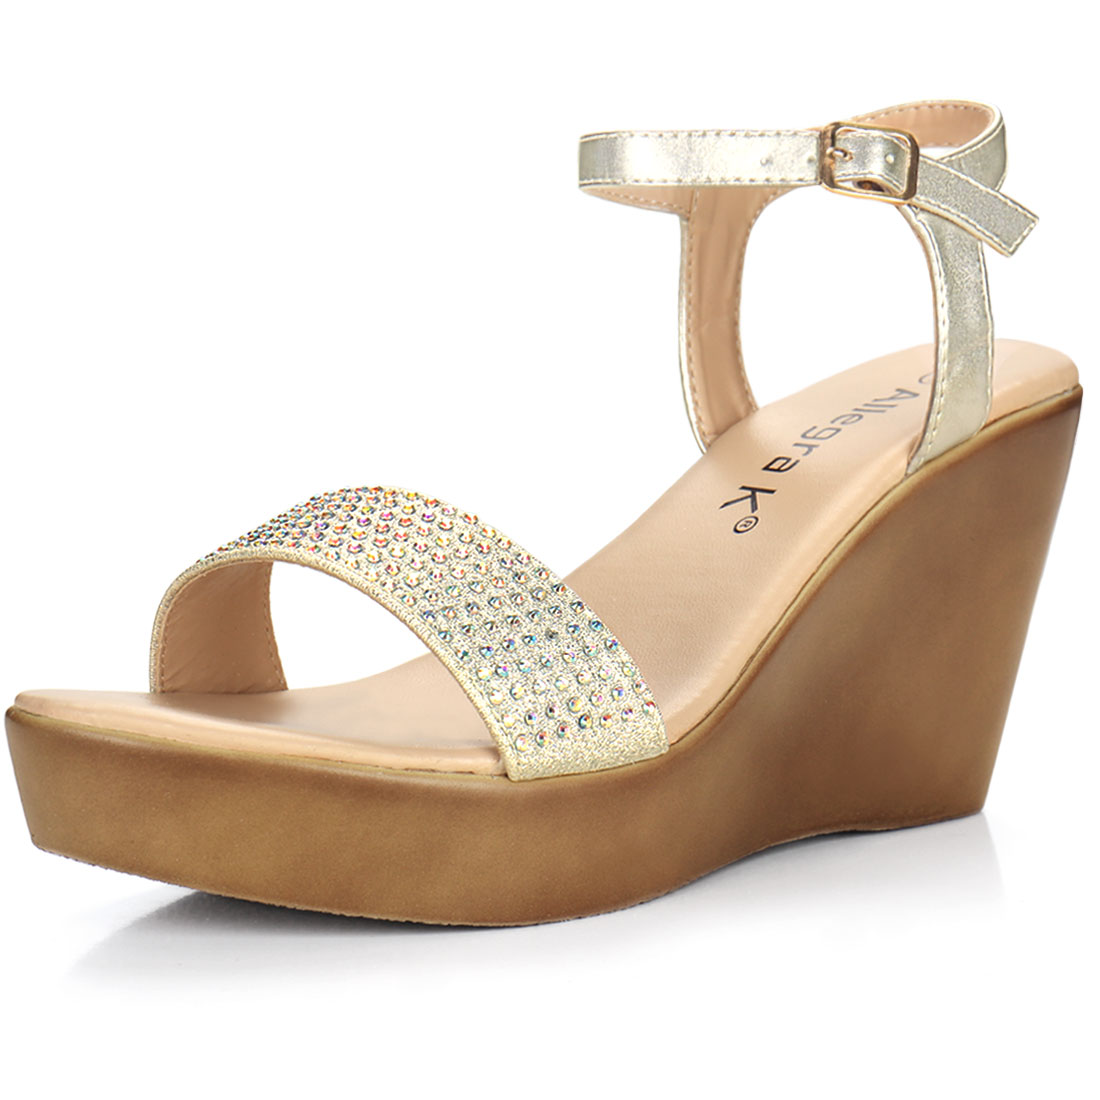 Woman Rhinestones Embellished Open Toe Wedge Sandals Gold US 10